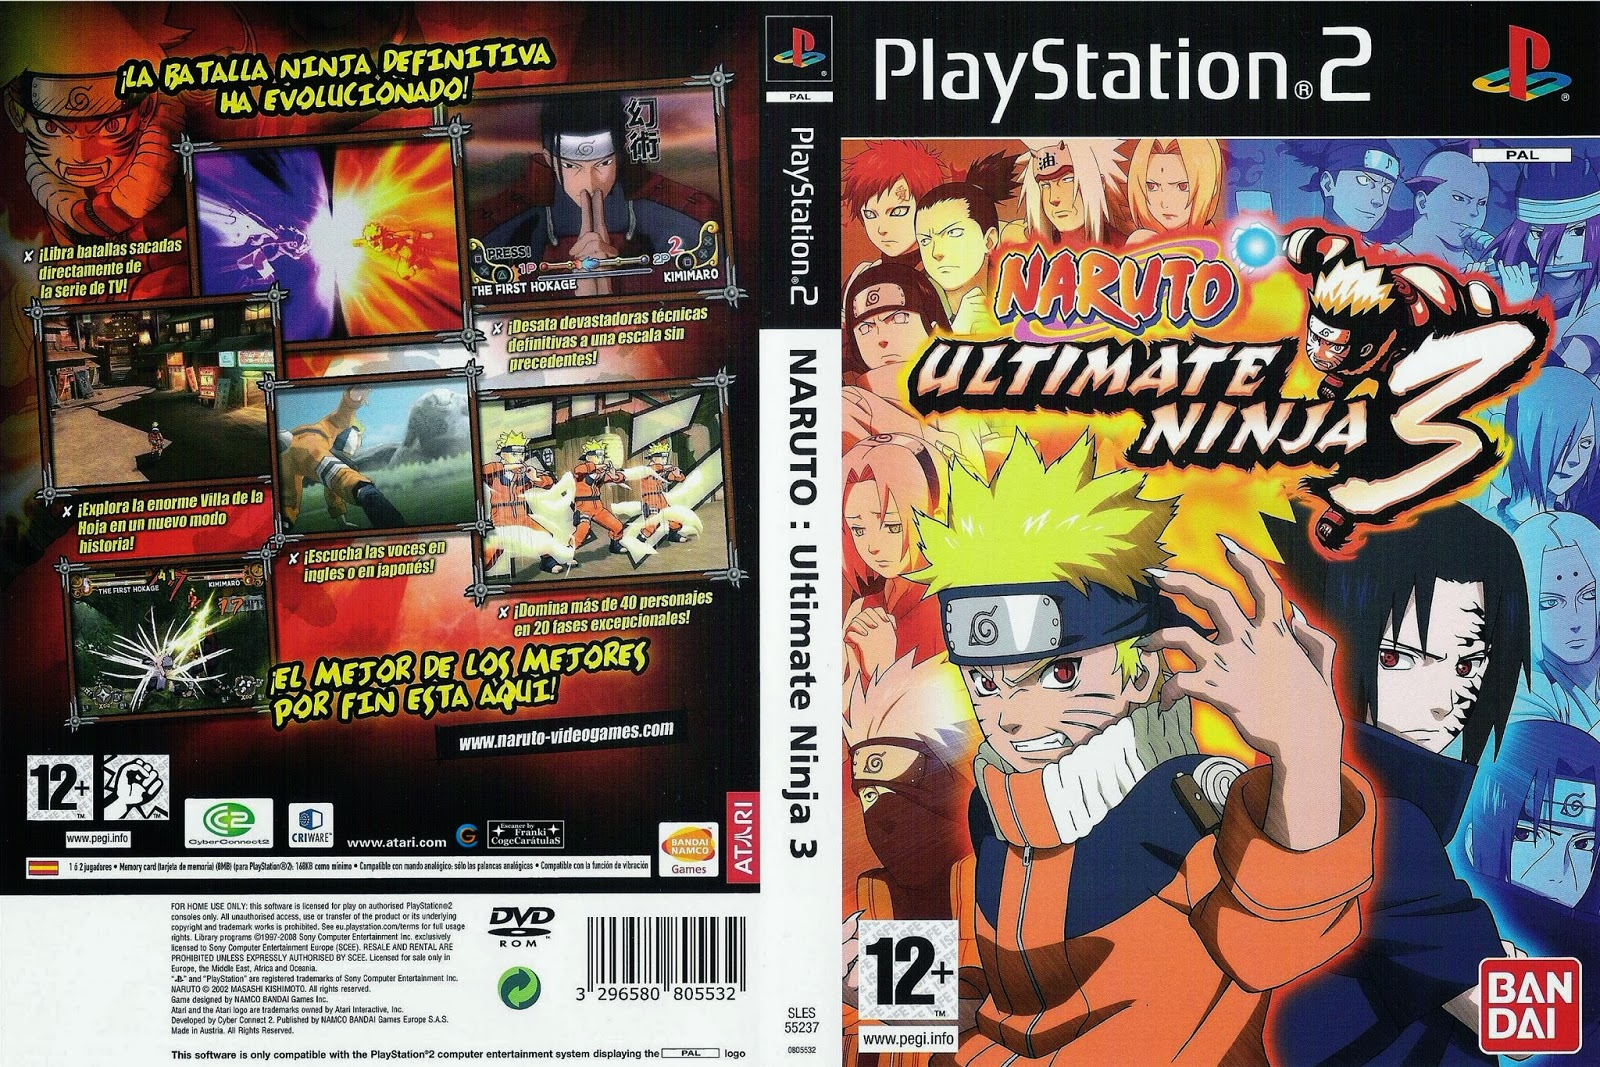 Naruto+PS2+Ultimate+Ninja+6 Ultra Capas: Naruto Ultimate Ninja 3 ...